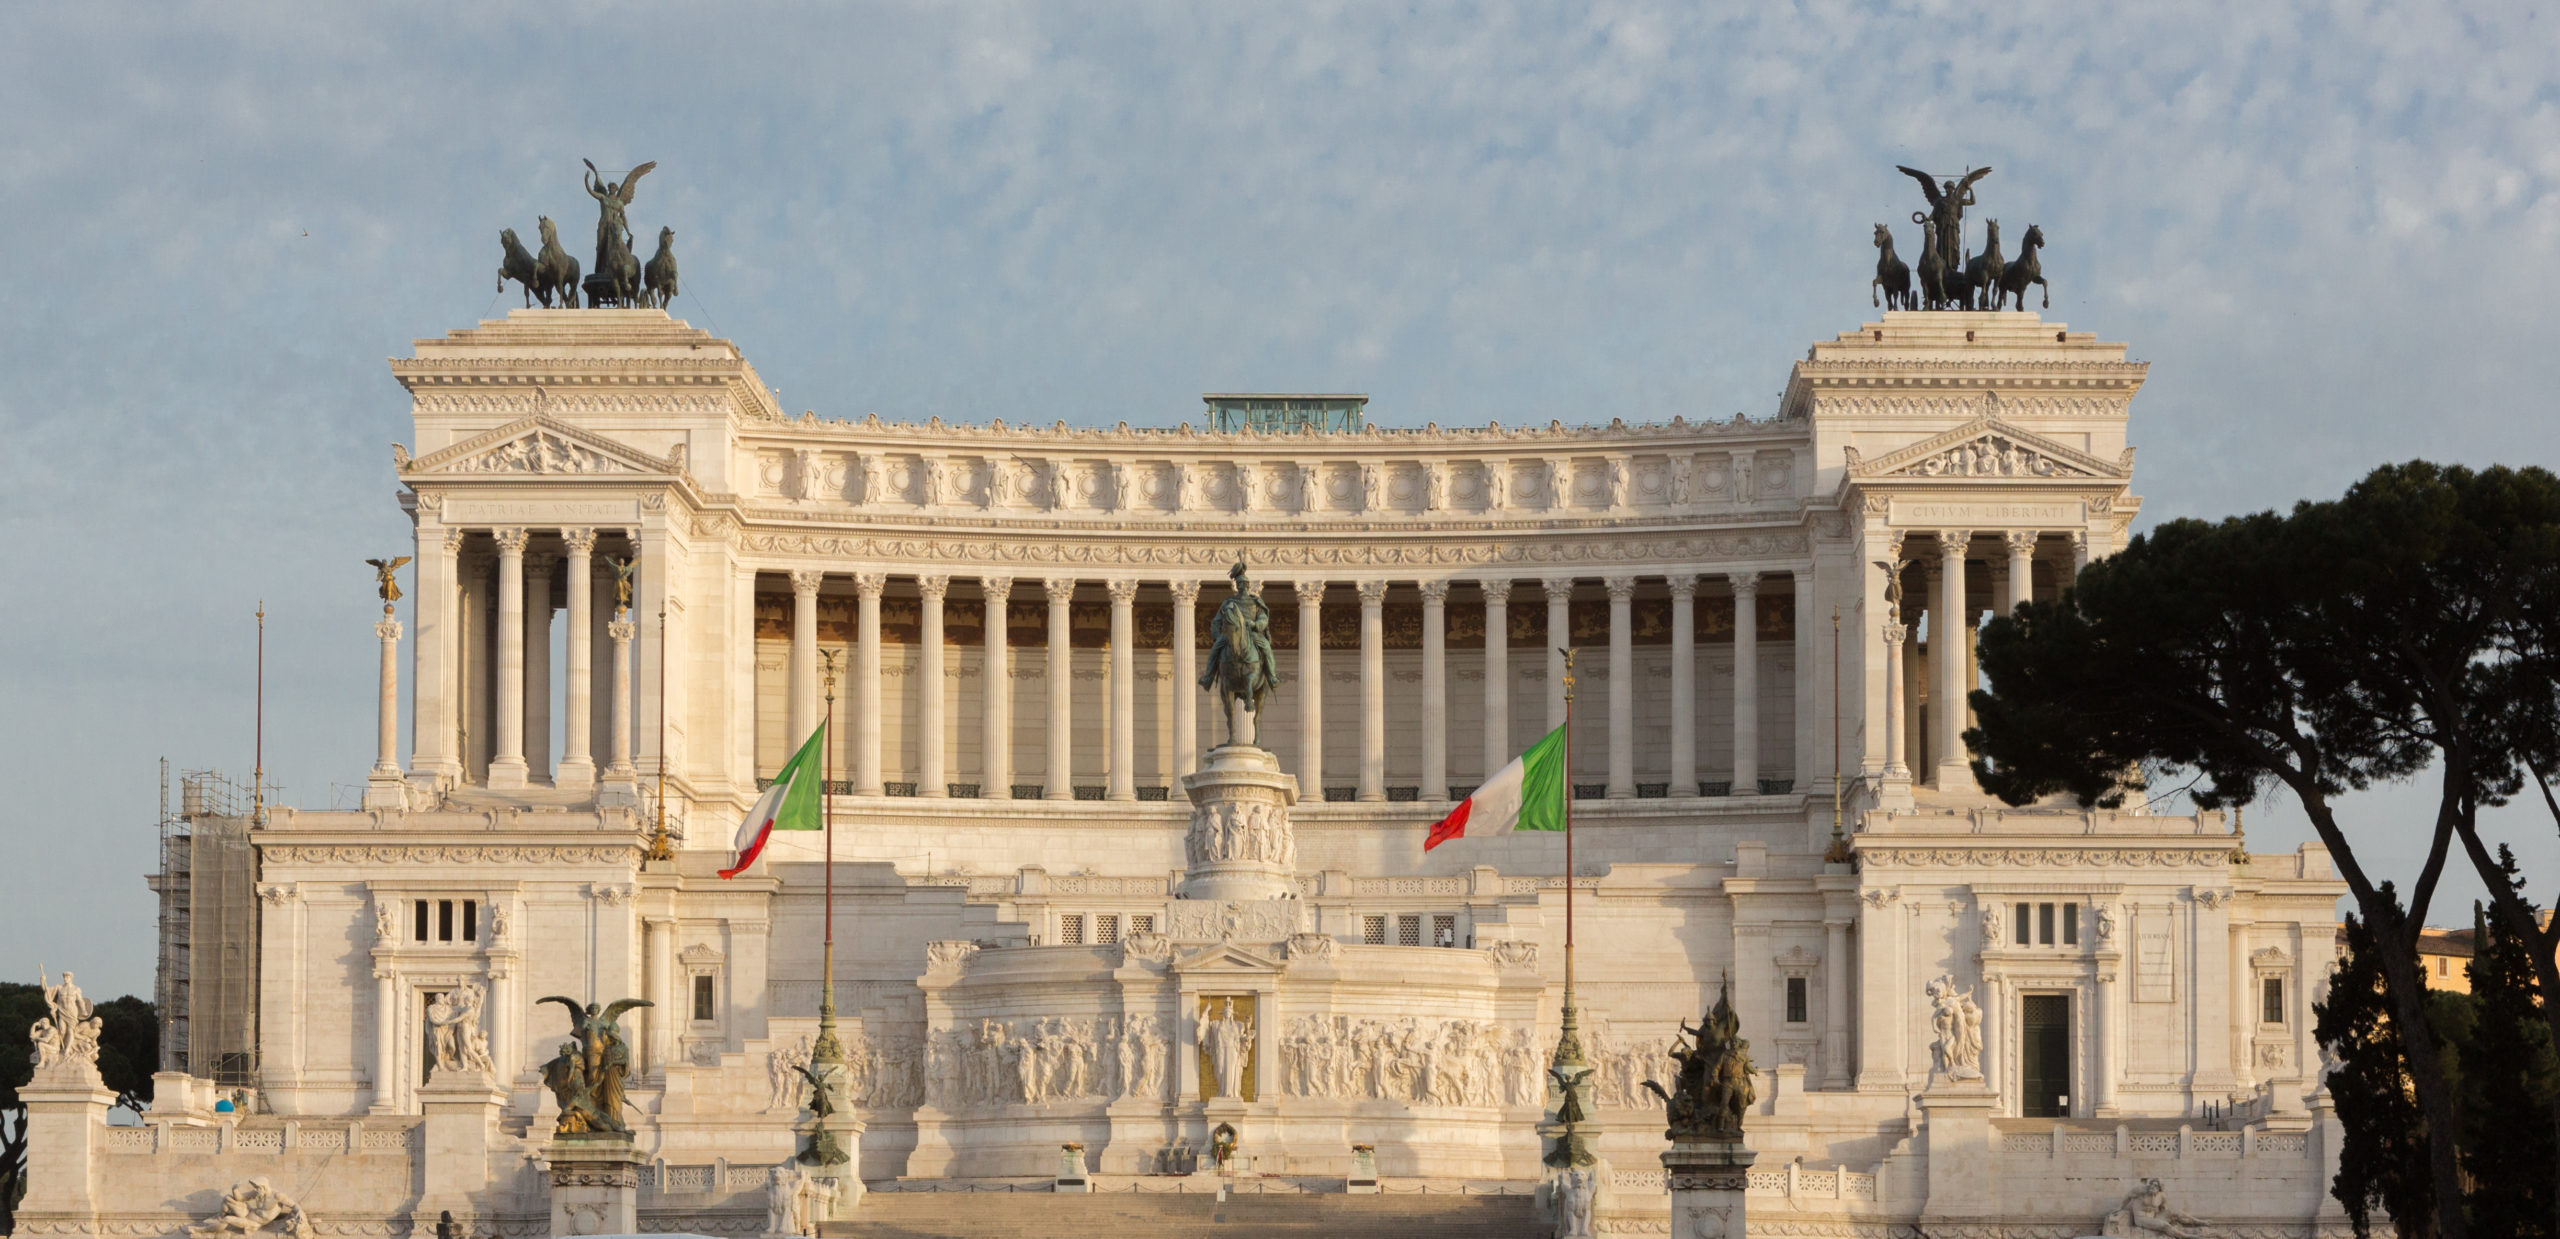 How Does The Italian Government Work For Its Citizens?